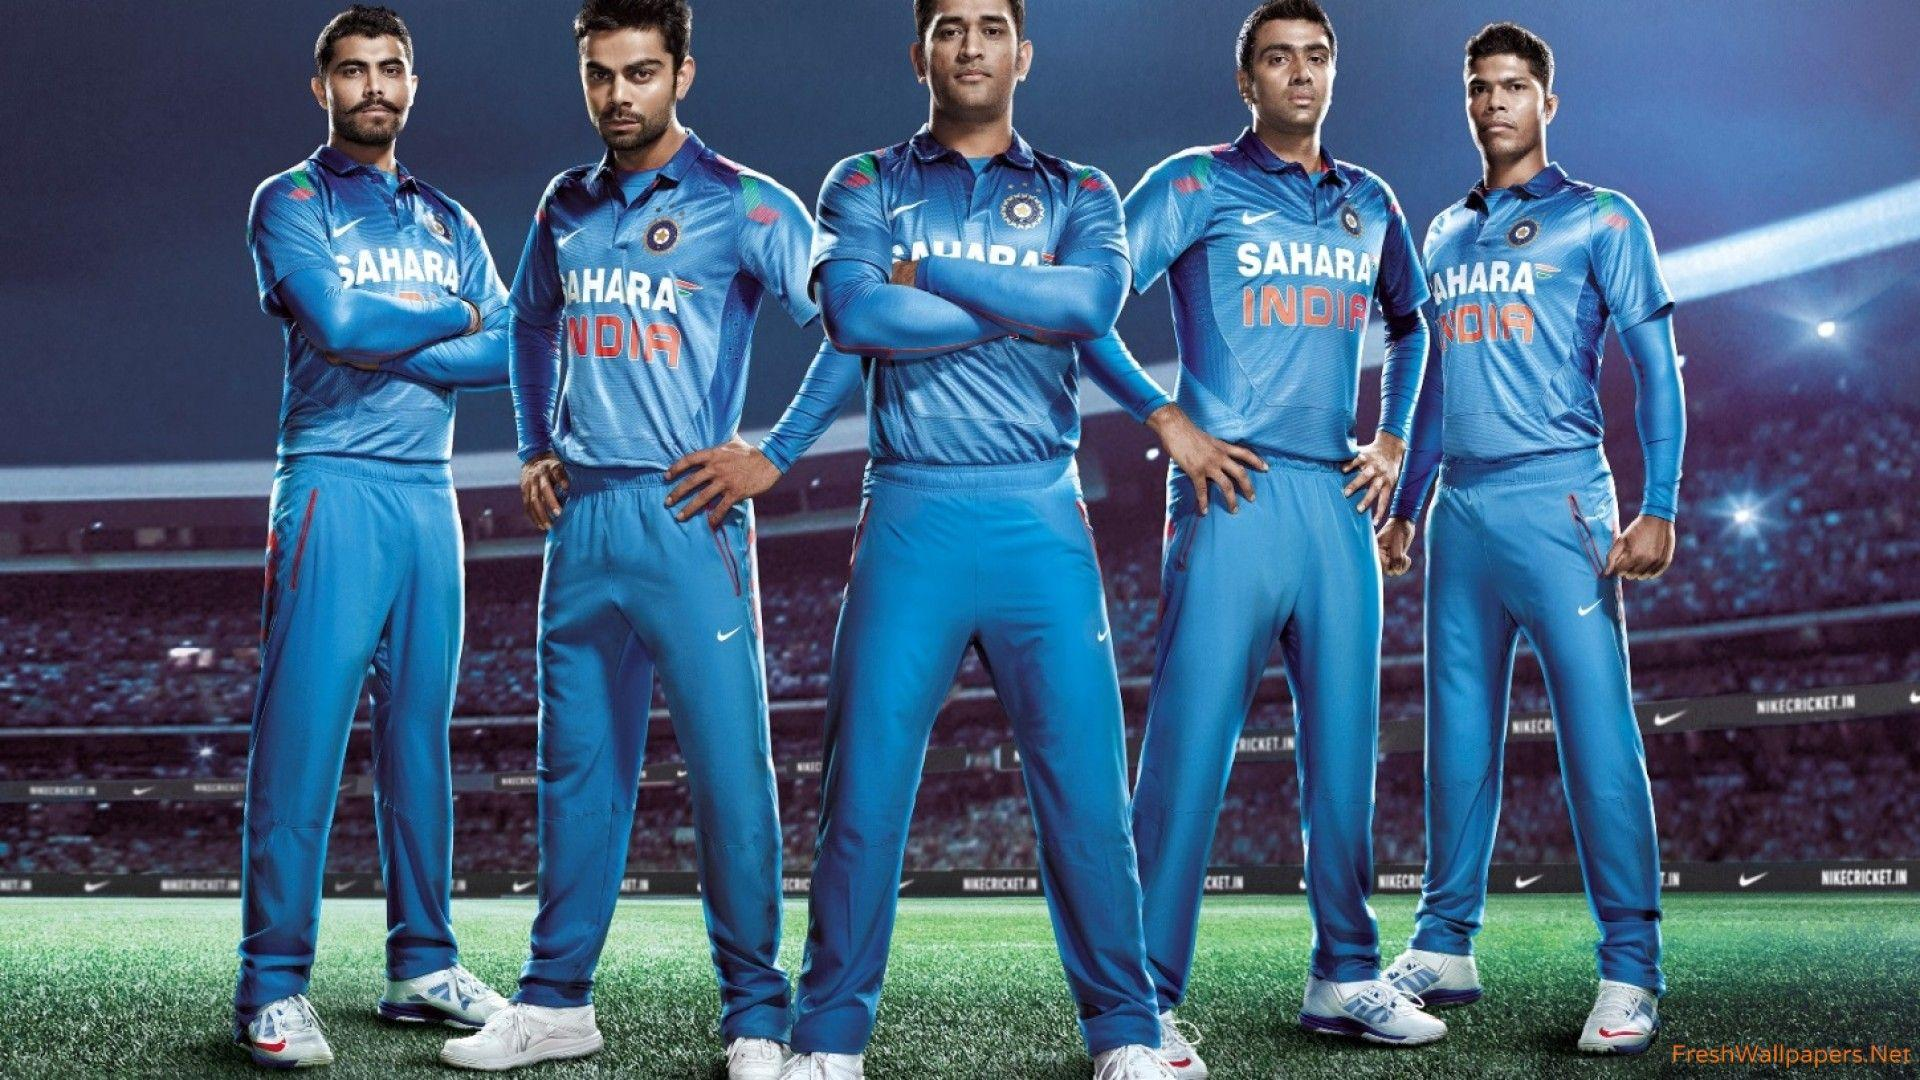 Indian Cricket Team 2015 wallpapers